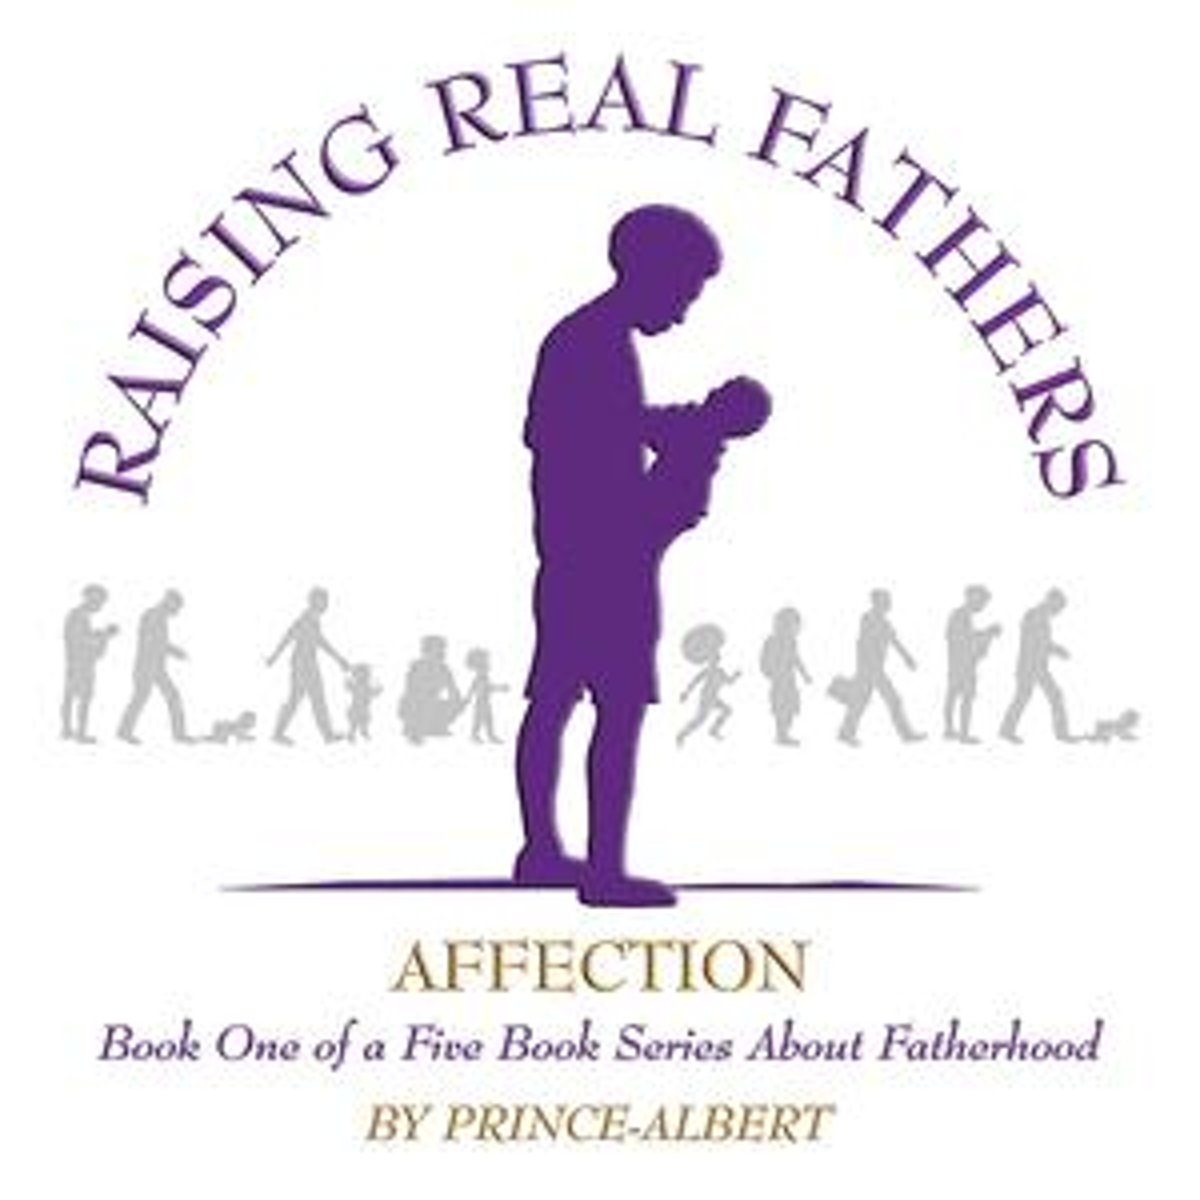 Raising Real Fathers